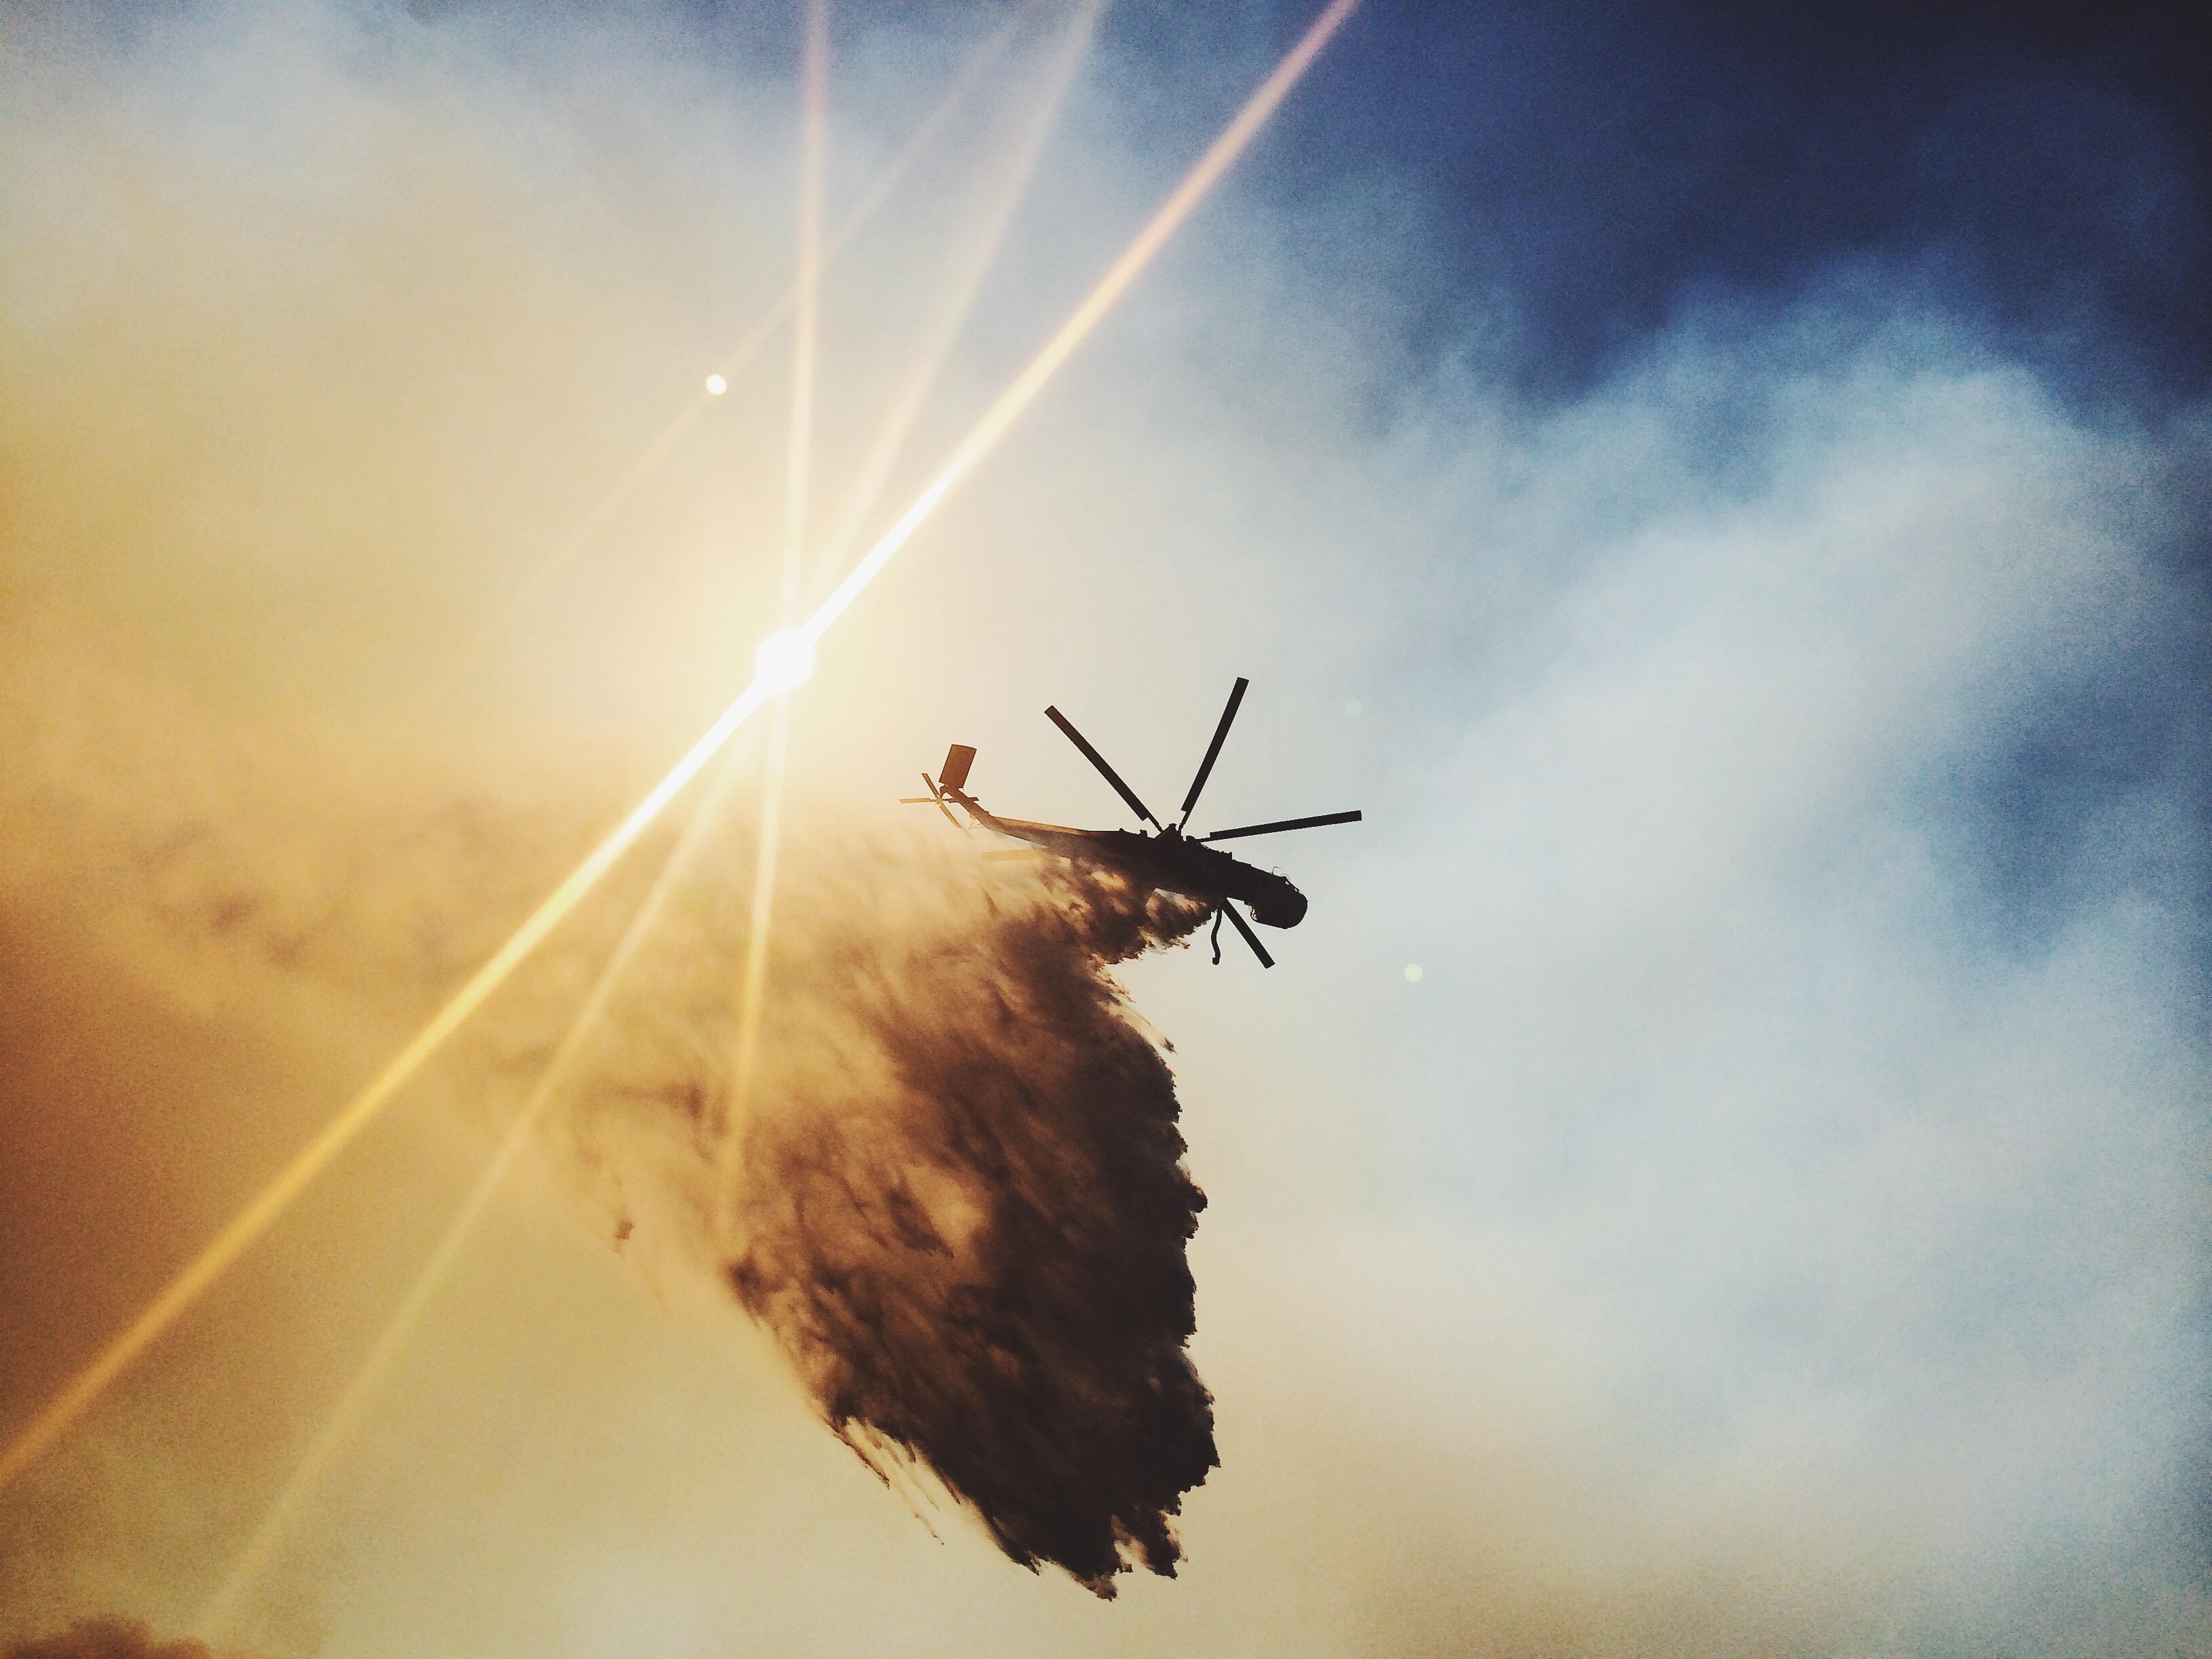 Helicopter fighting wildland fire. Photo taken by ExpertVoice Expert Gregg Boydston.